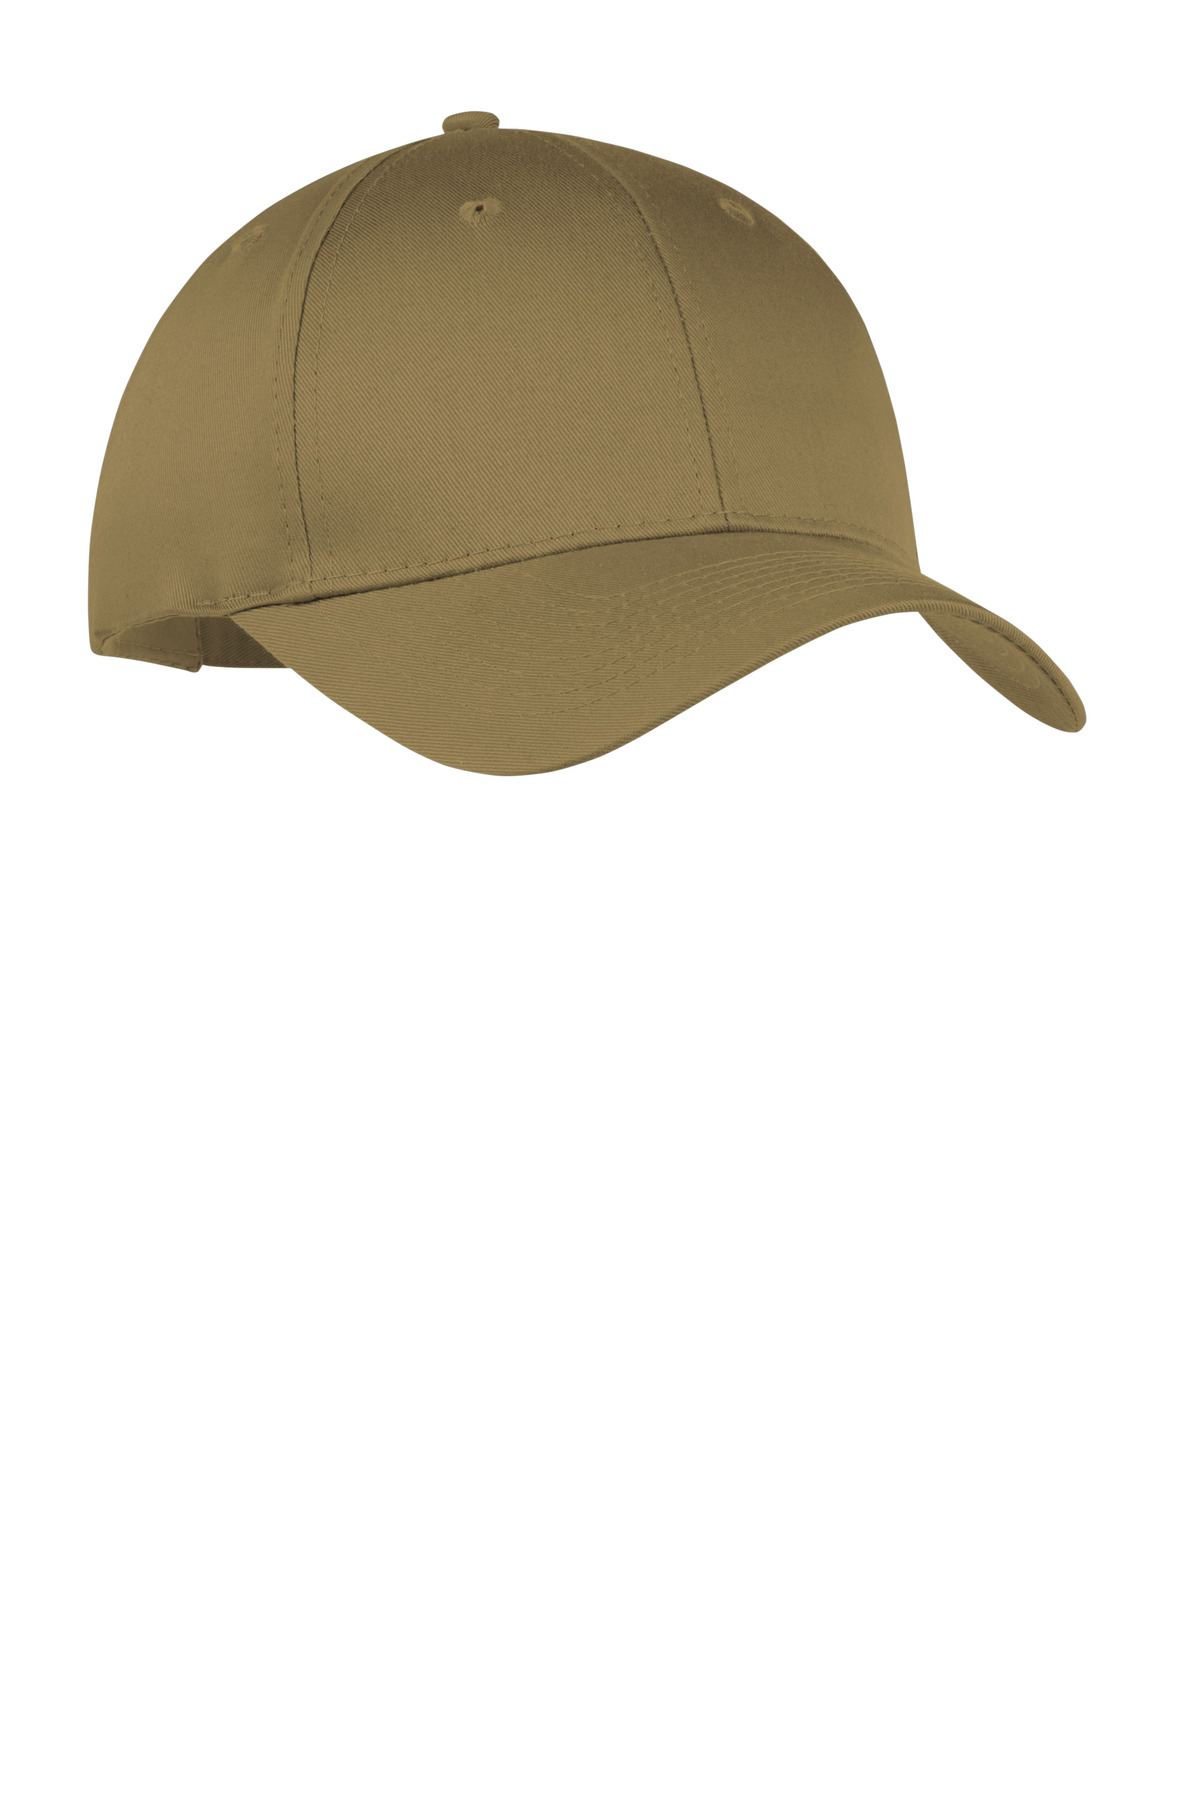 Port & Company ® Six-Panel Twill Cap.  CP80 - Coyote Brown